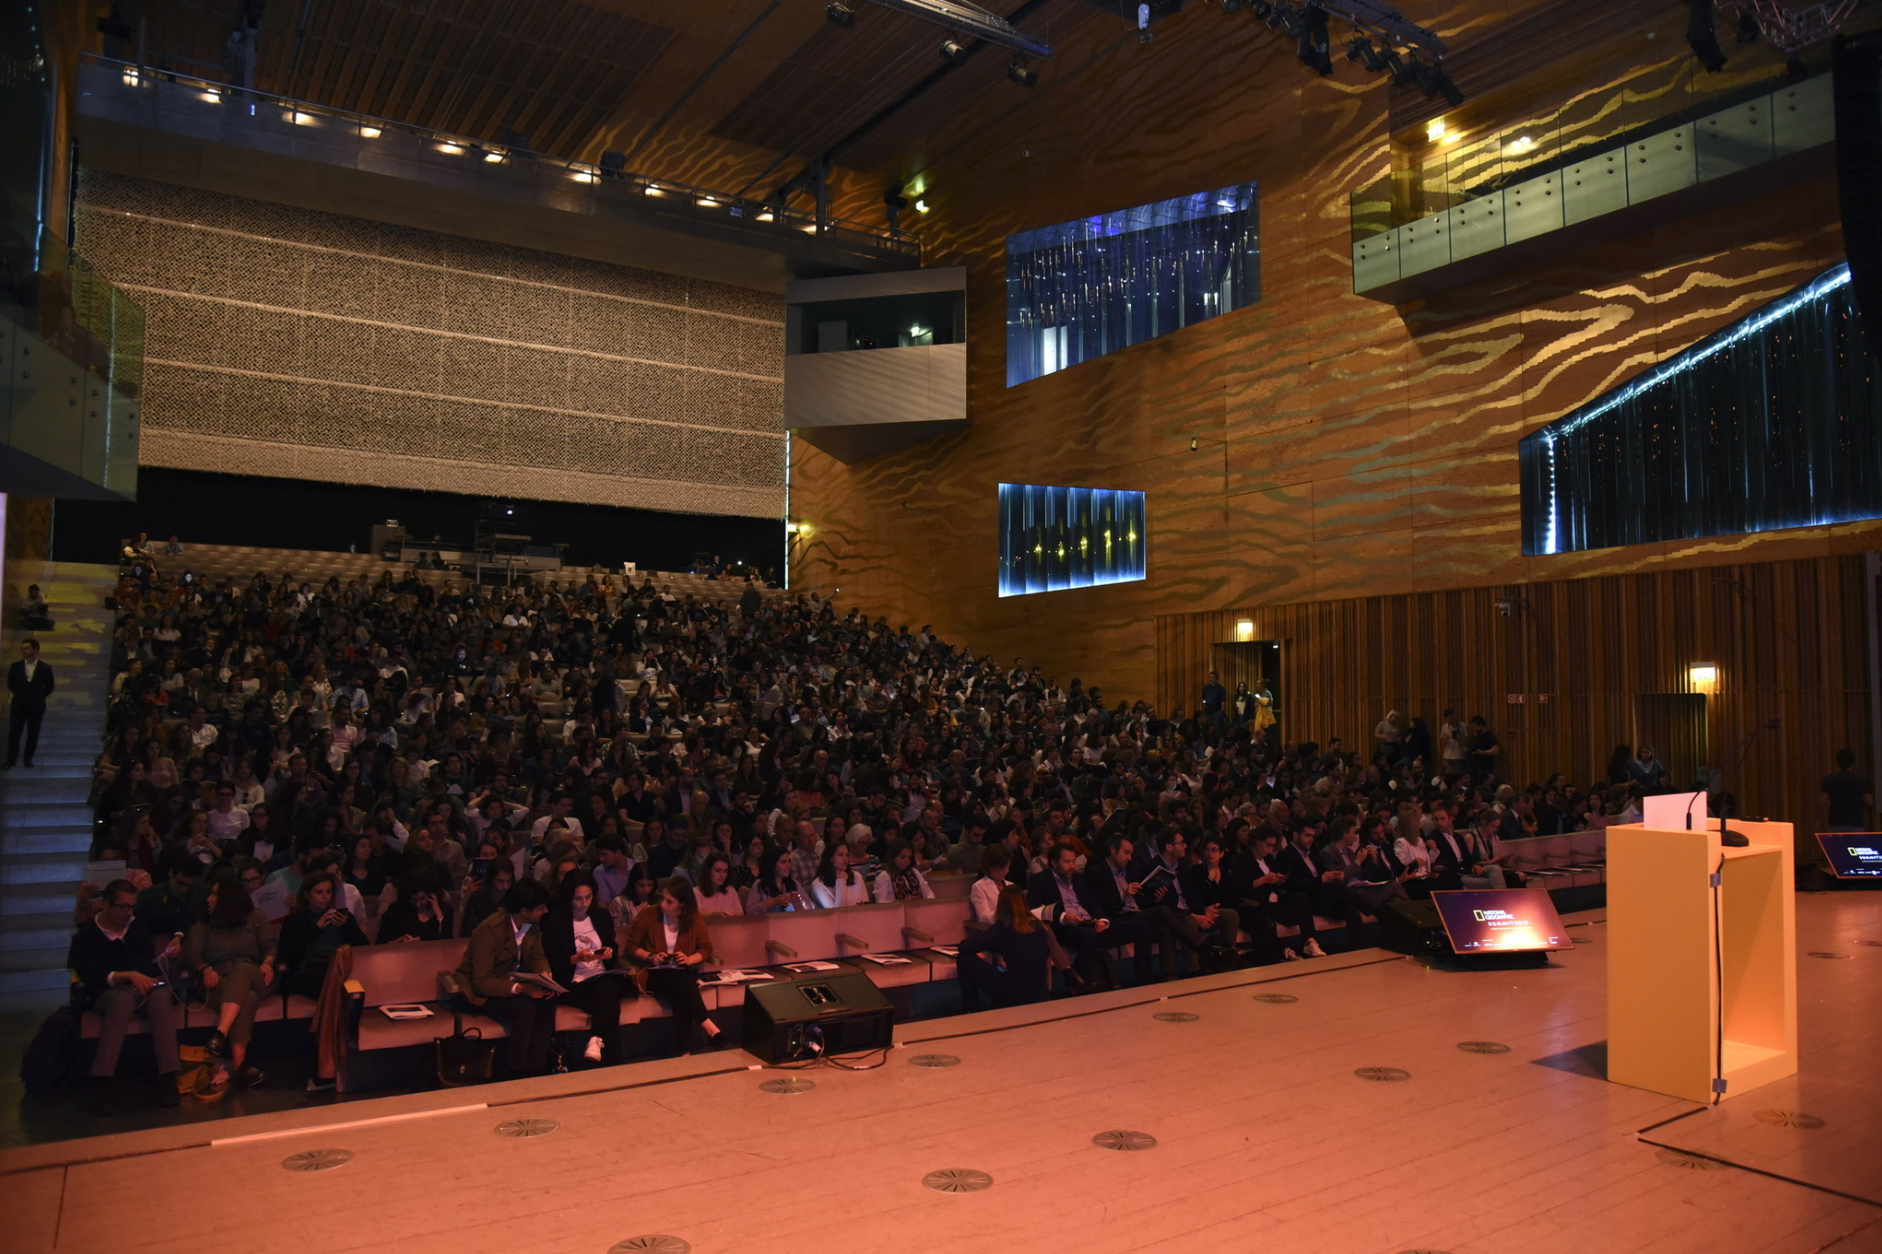 Photo of Packed audience in Casa da Música in Porto, Portugal for National Geographic Summit 2019.